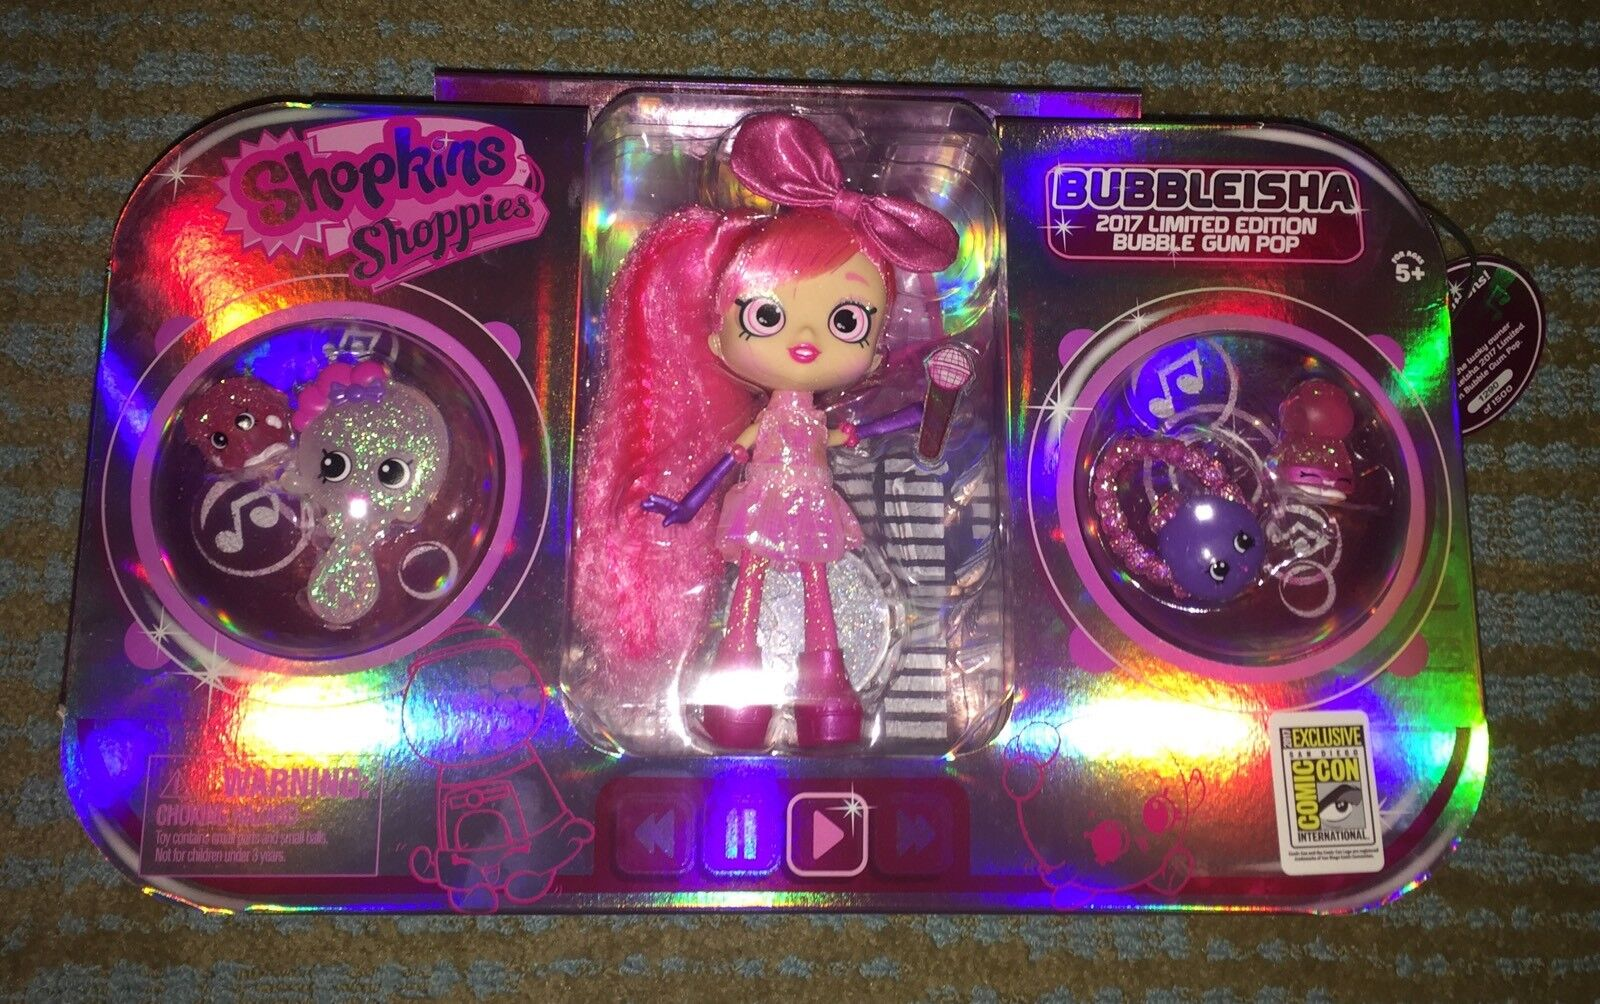 SDCC 2017 SHOPKINS SHOPPIES BUBBLE GUM POP BUBBLEISHA 1 1500 LIMITED EXCLUSIVE